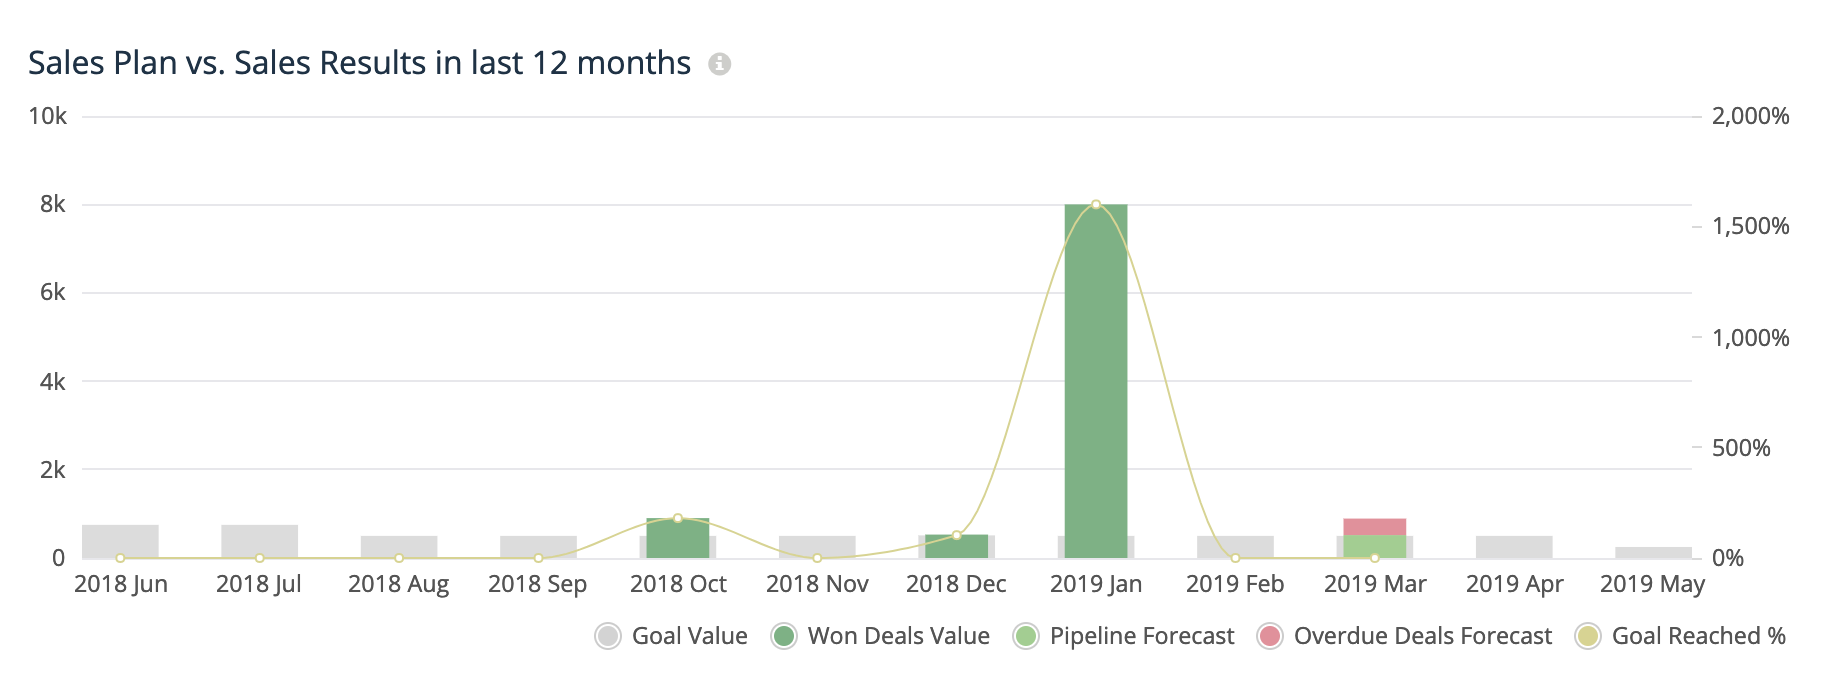 Sales-plan-vs-sales-results-in-last-12-months-dashboard-teamgate-crm.png